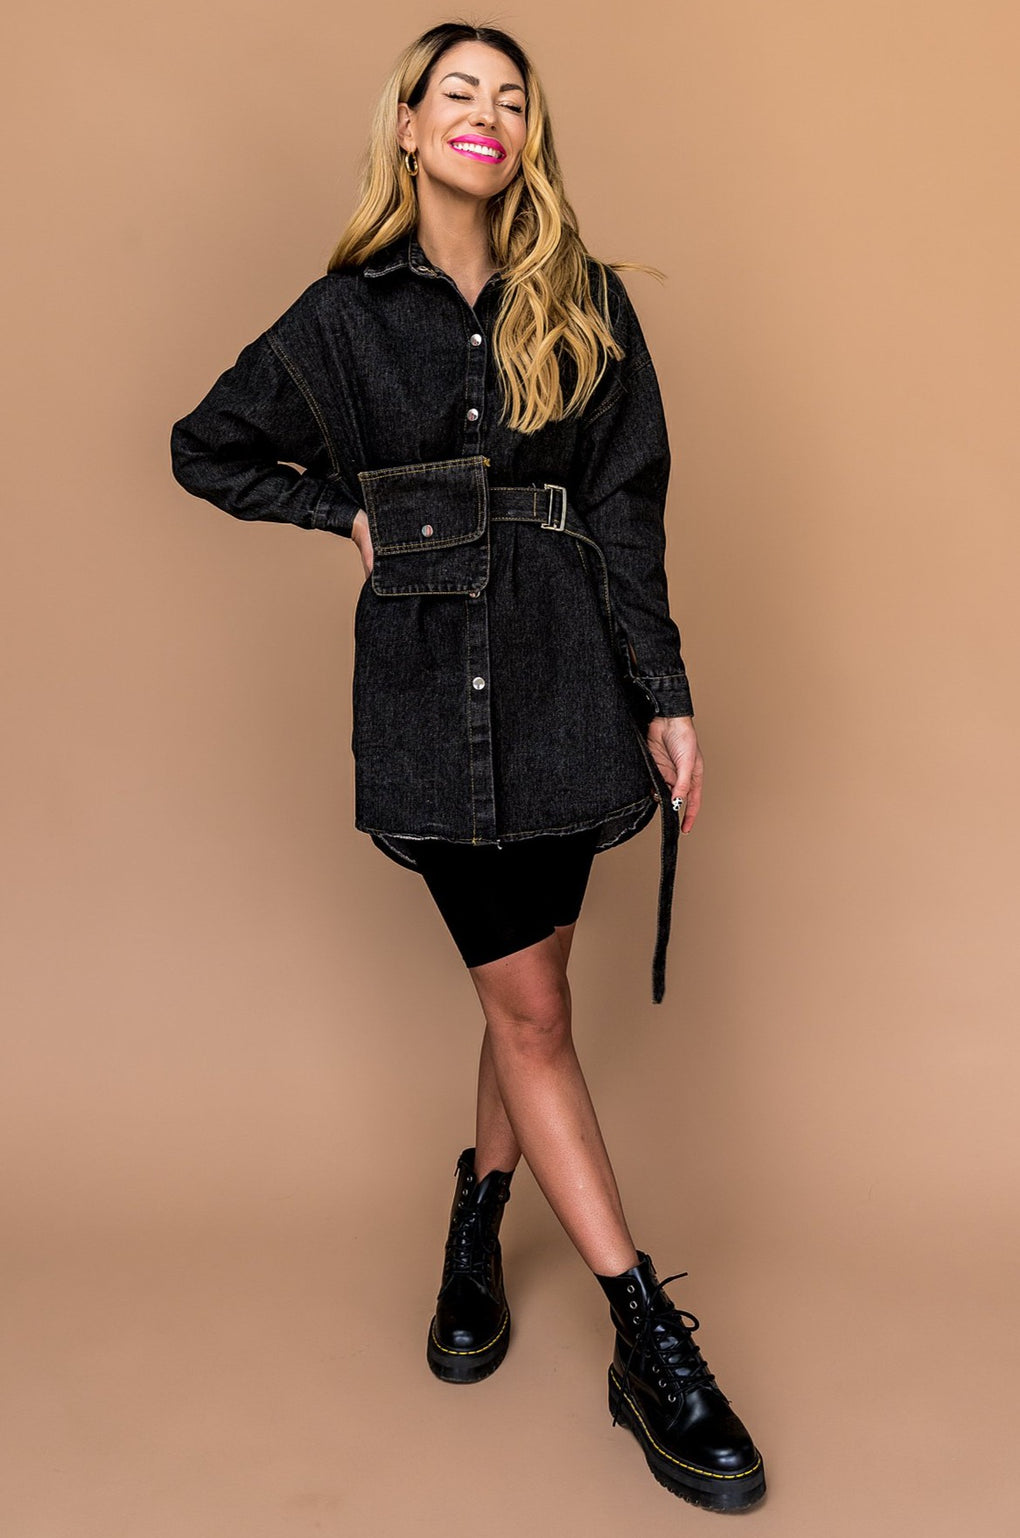 My Type Belted Denim Top in Black *Lex's Pick*